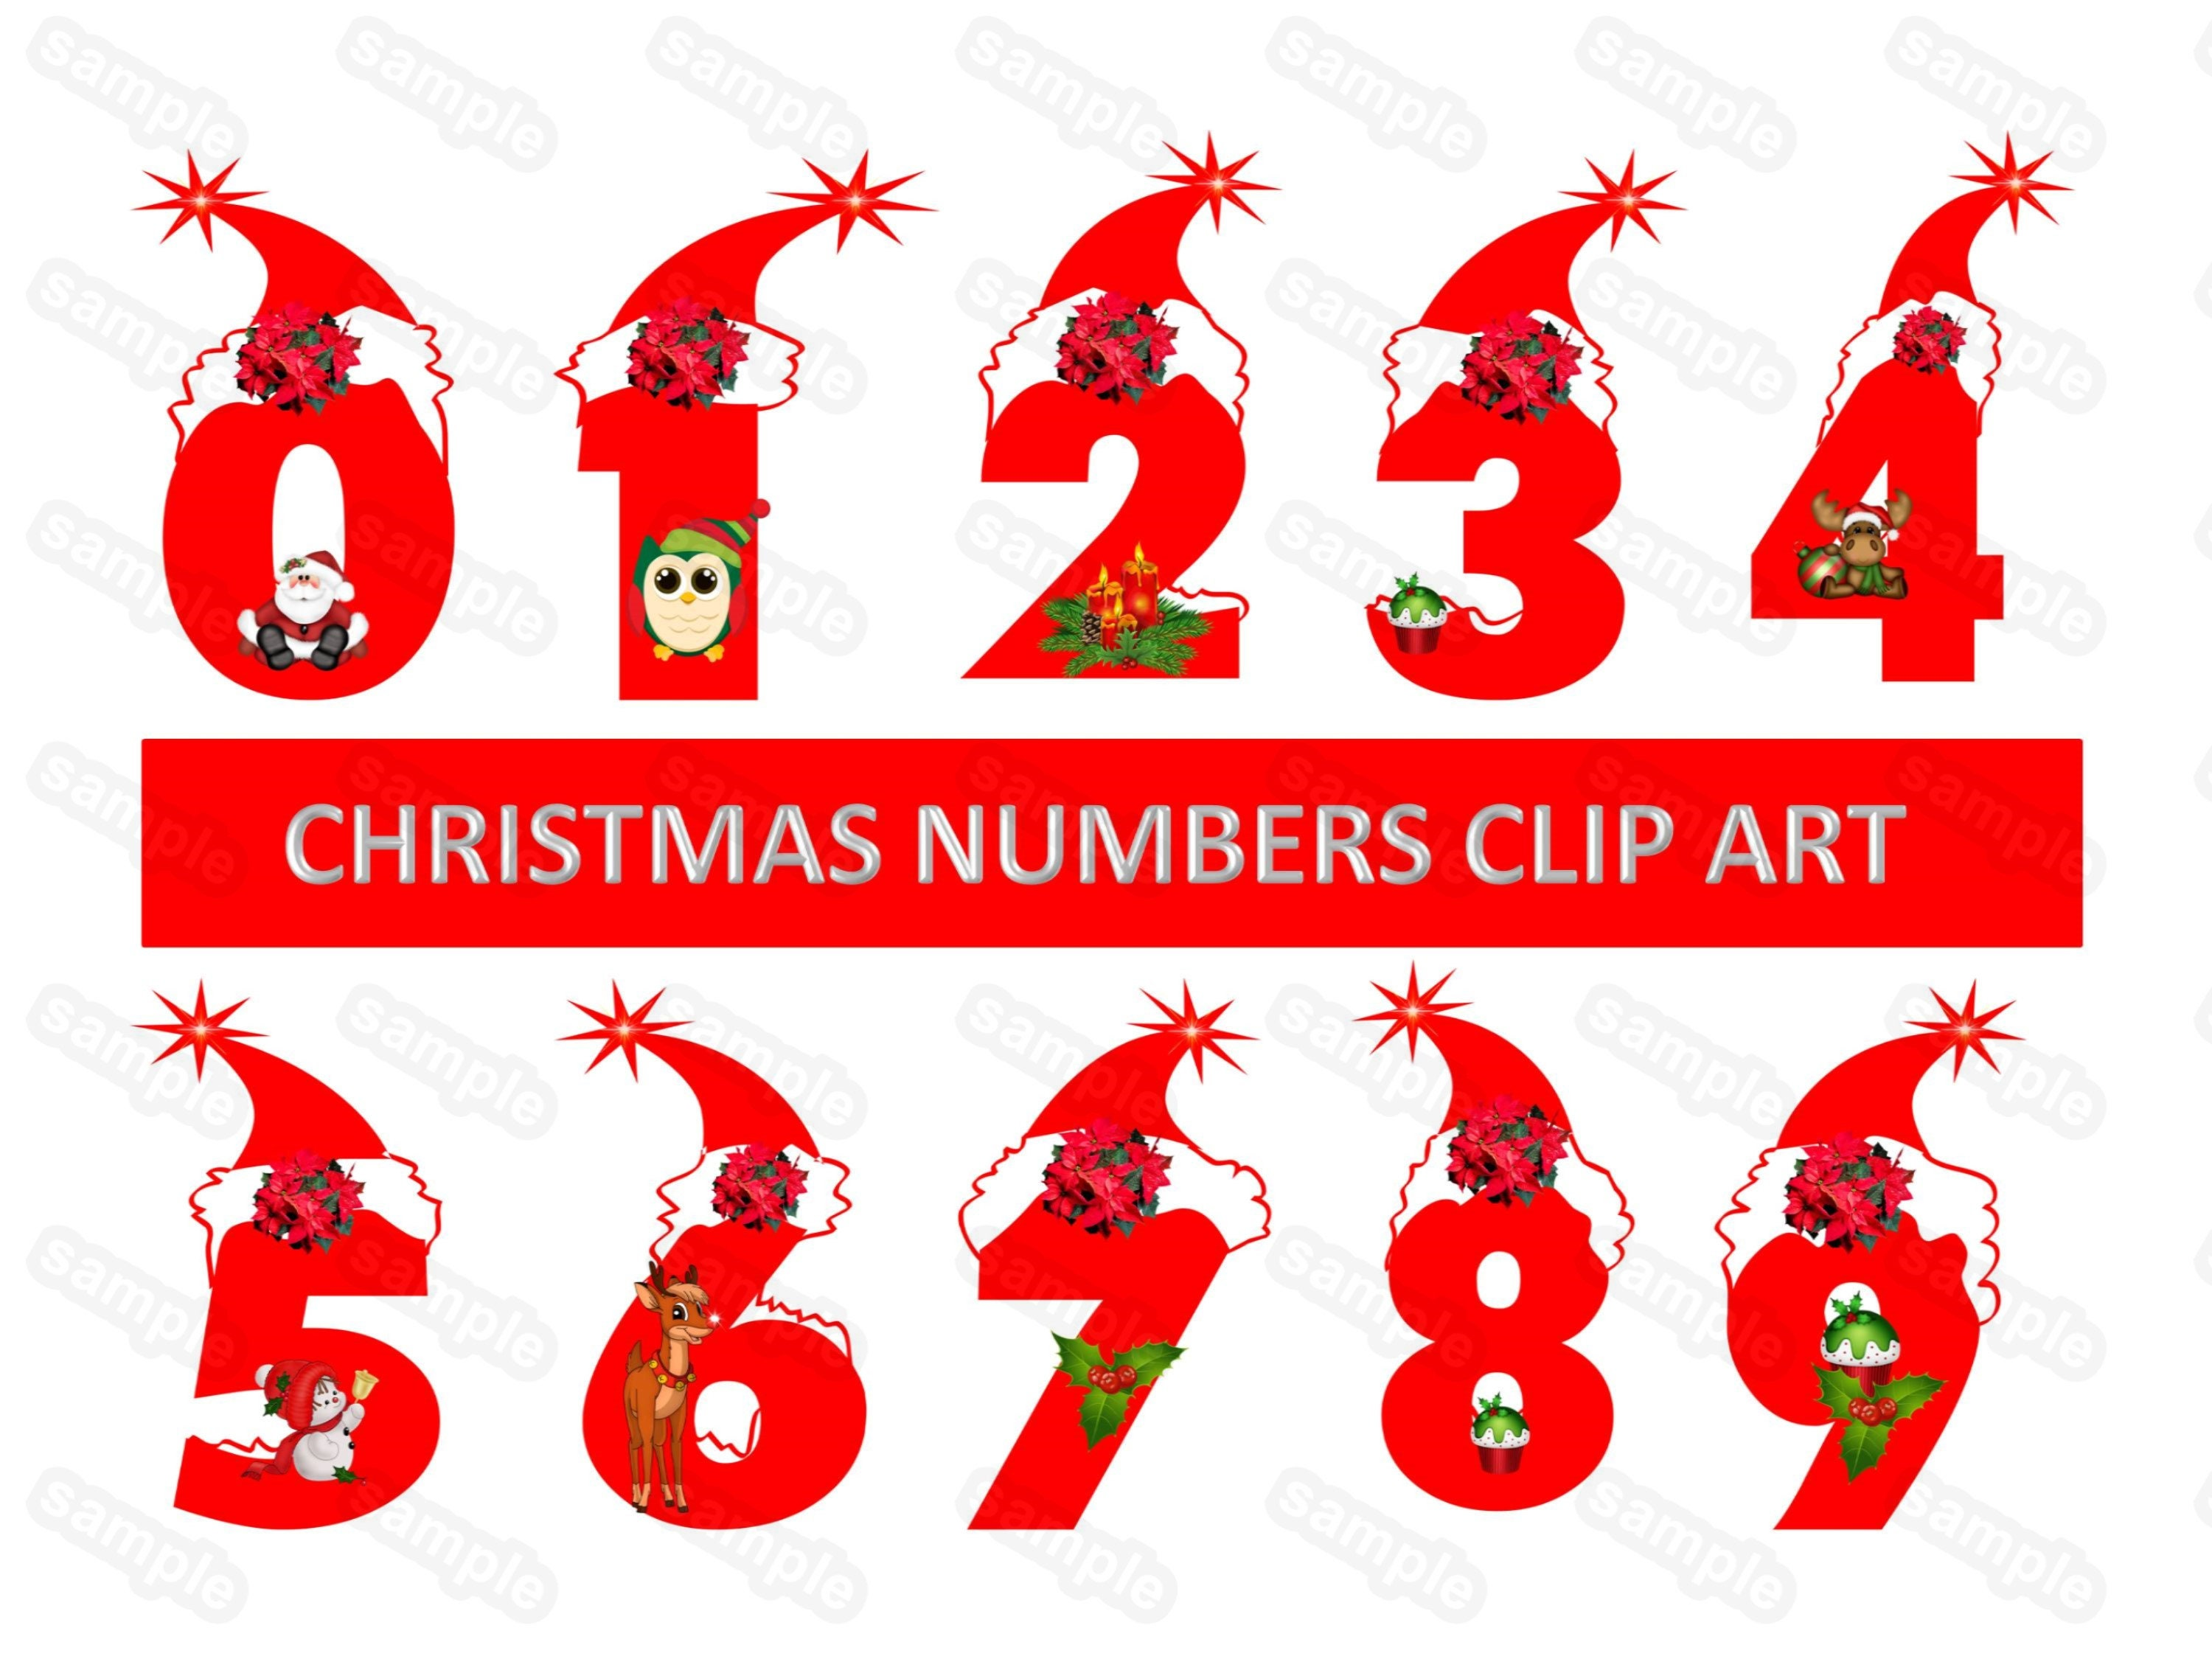 Red Christmas Numbers Numbers Clip Art Christmas Numbers | Etsy